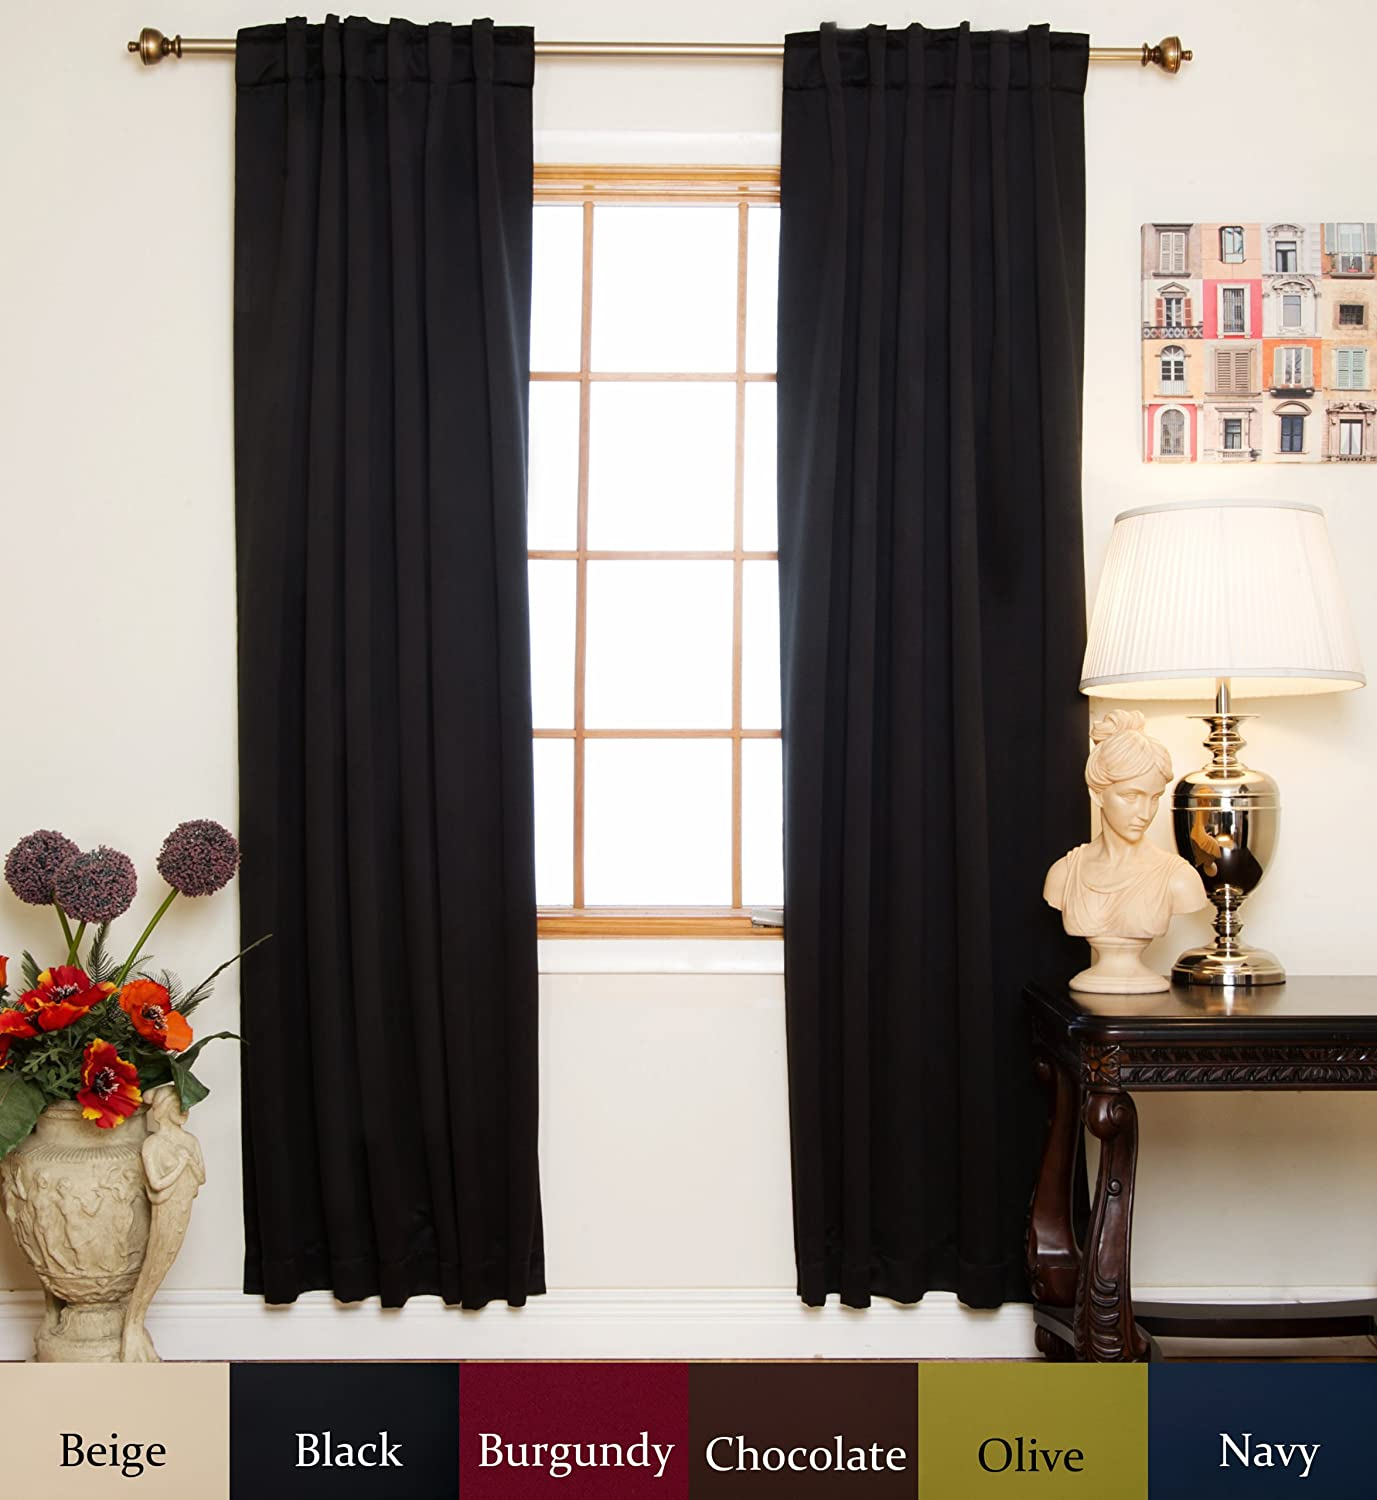 room inch prod curtain p darkening curtains hei blackout colormate qlt jillian window rod panel wid